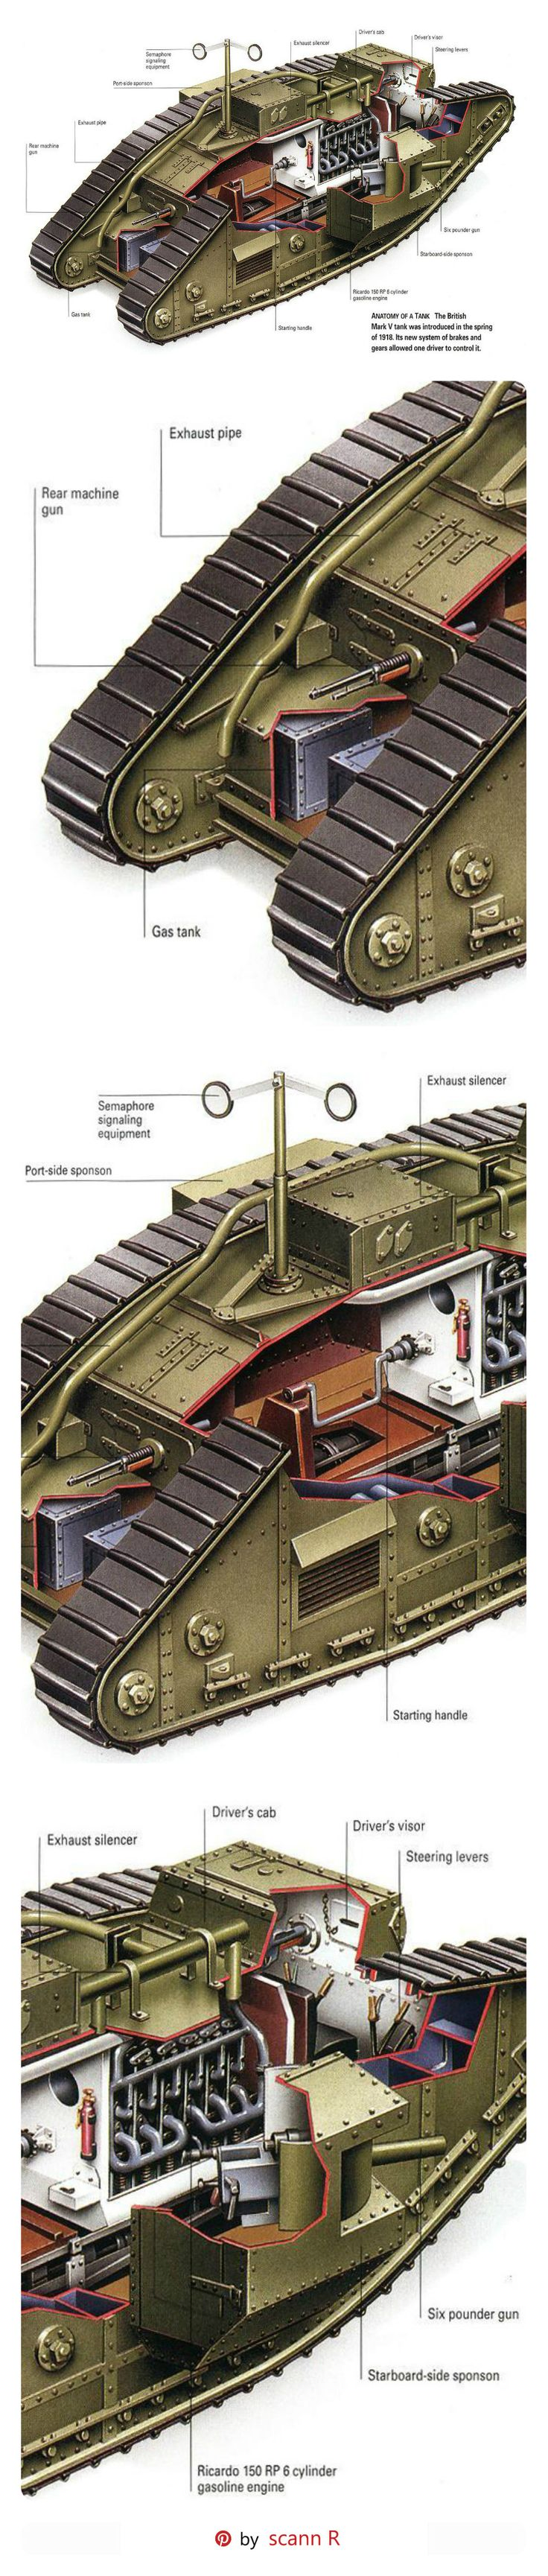 The British Mark V tank was an upgraded version of the Mark IV tank, deployed in 1918 and used in action in the closing months of World War I, in the Allied intervention in the Russian Civil War on the White Russian side, and by the Red Army. Thanks to Walter Wilson's epicyclic gear steering system, it was the first British heavy tank that required only one man to steer it